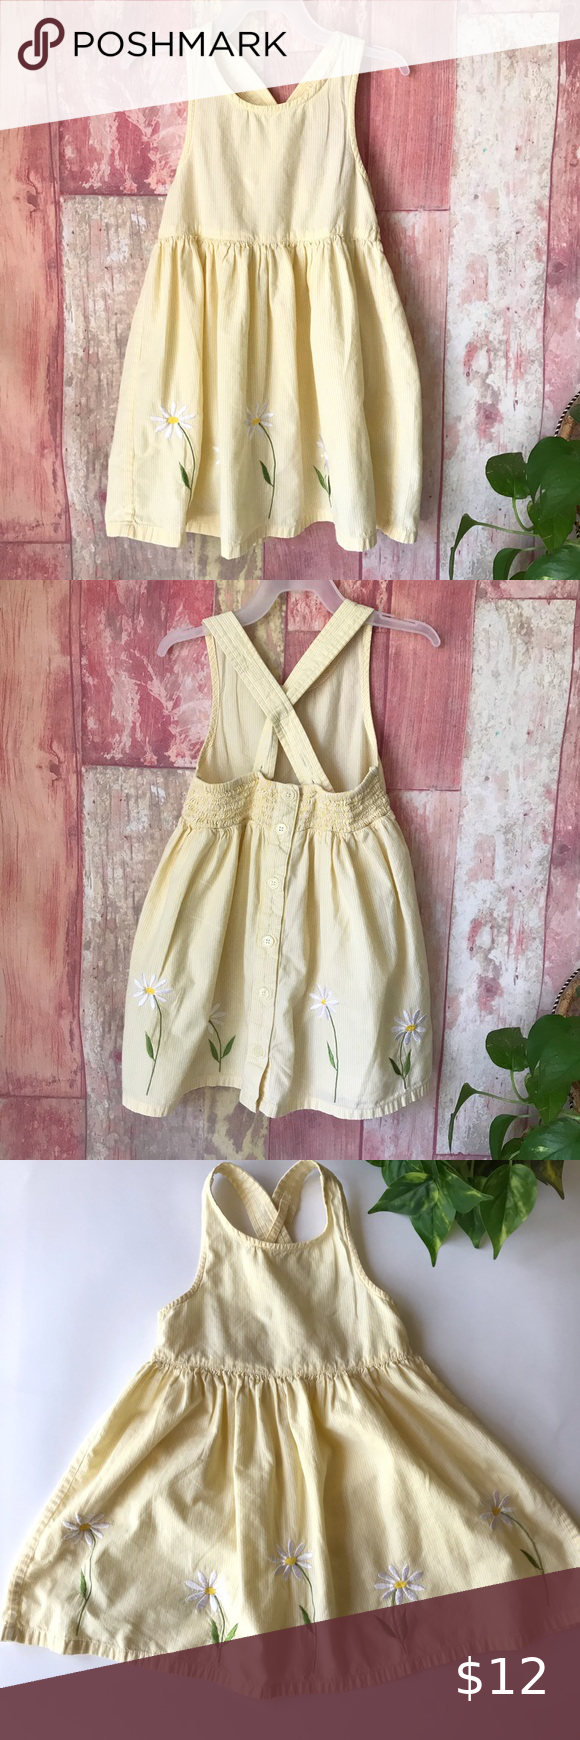 Baby Gap Yellow Summer Dress Size 30 36 Months Best Fit 3t Great Preowned Condition Overall Crisscross St Yellow Dress Summer Summer Dresses Kids Dresses [ 1740 x 580 Pixel ]